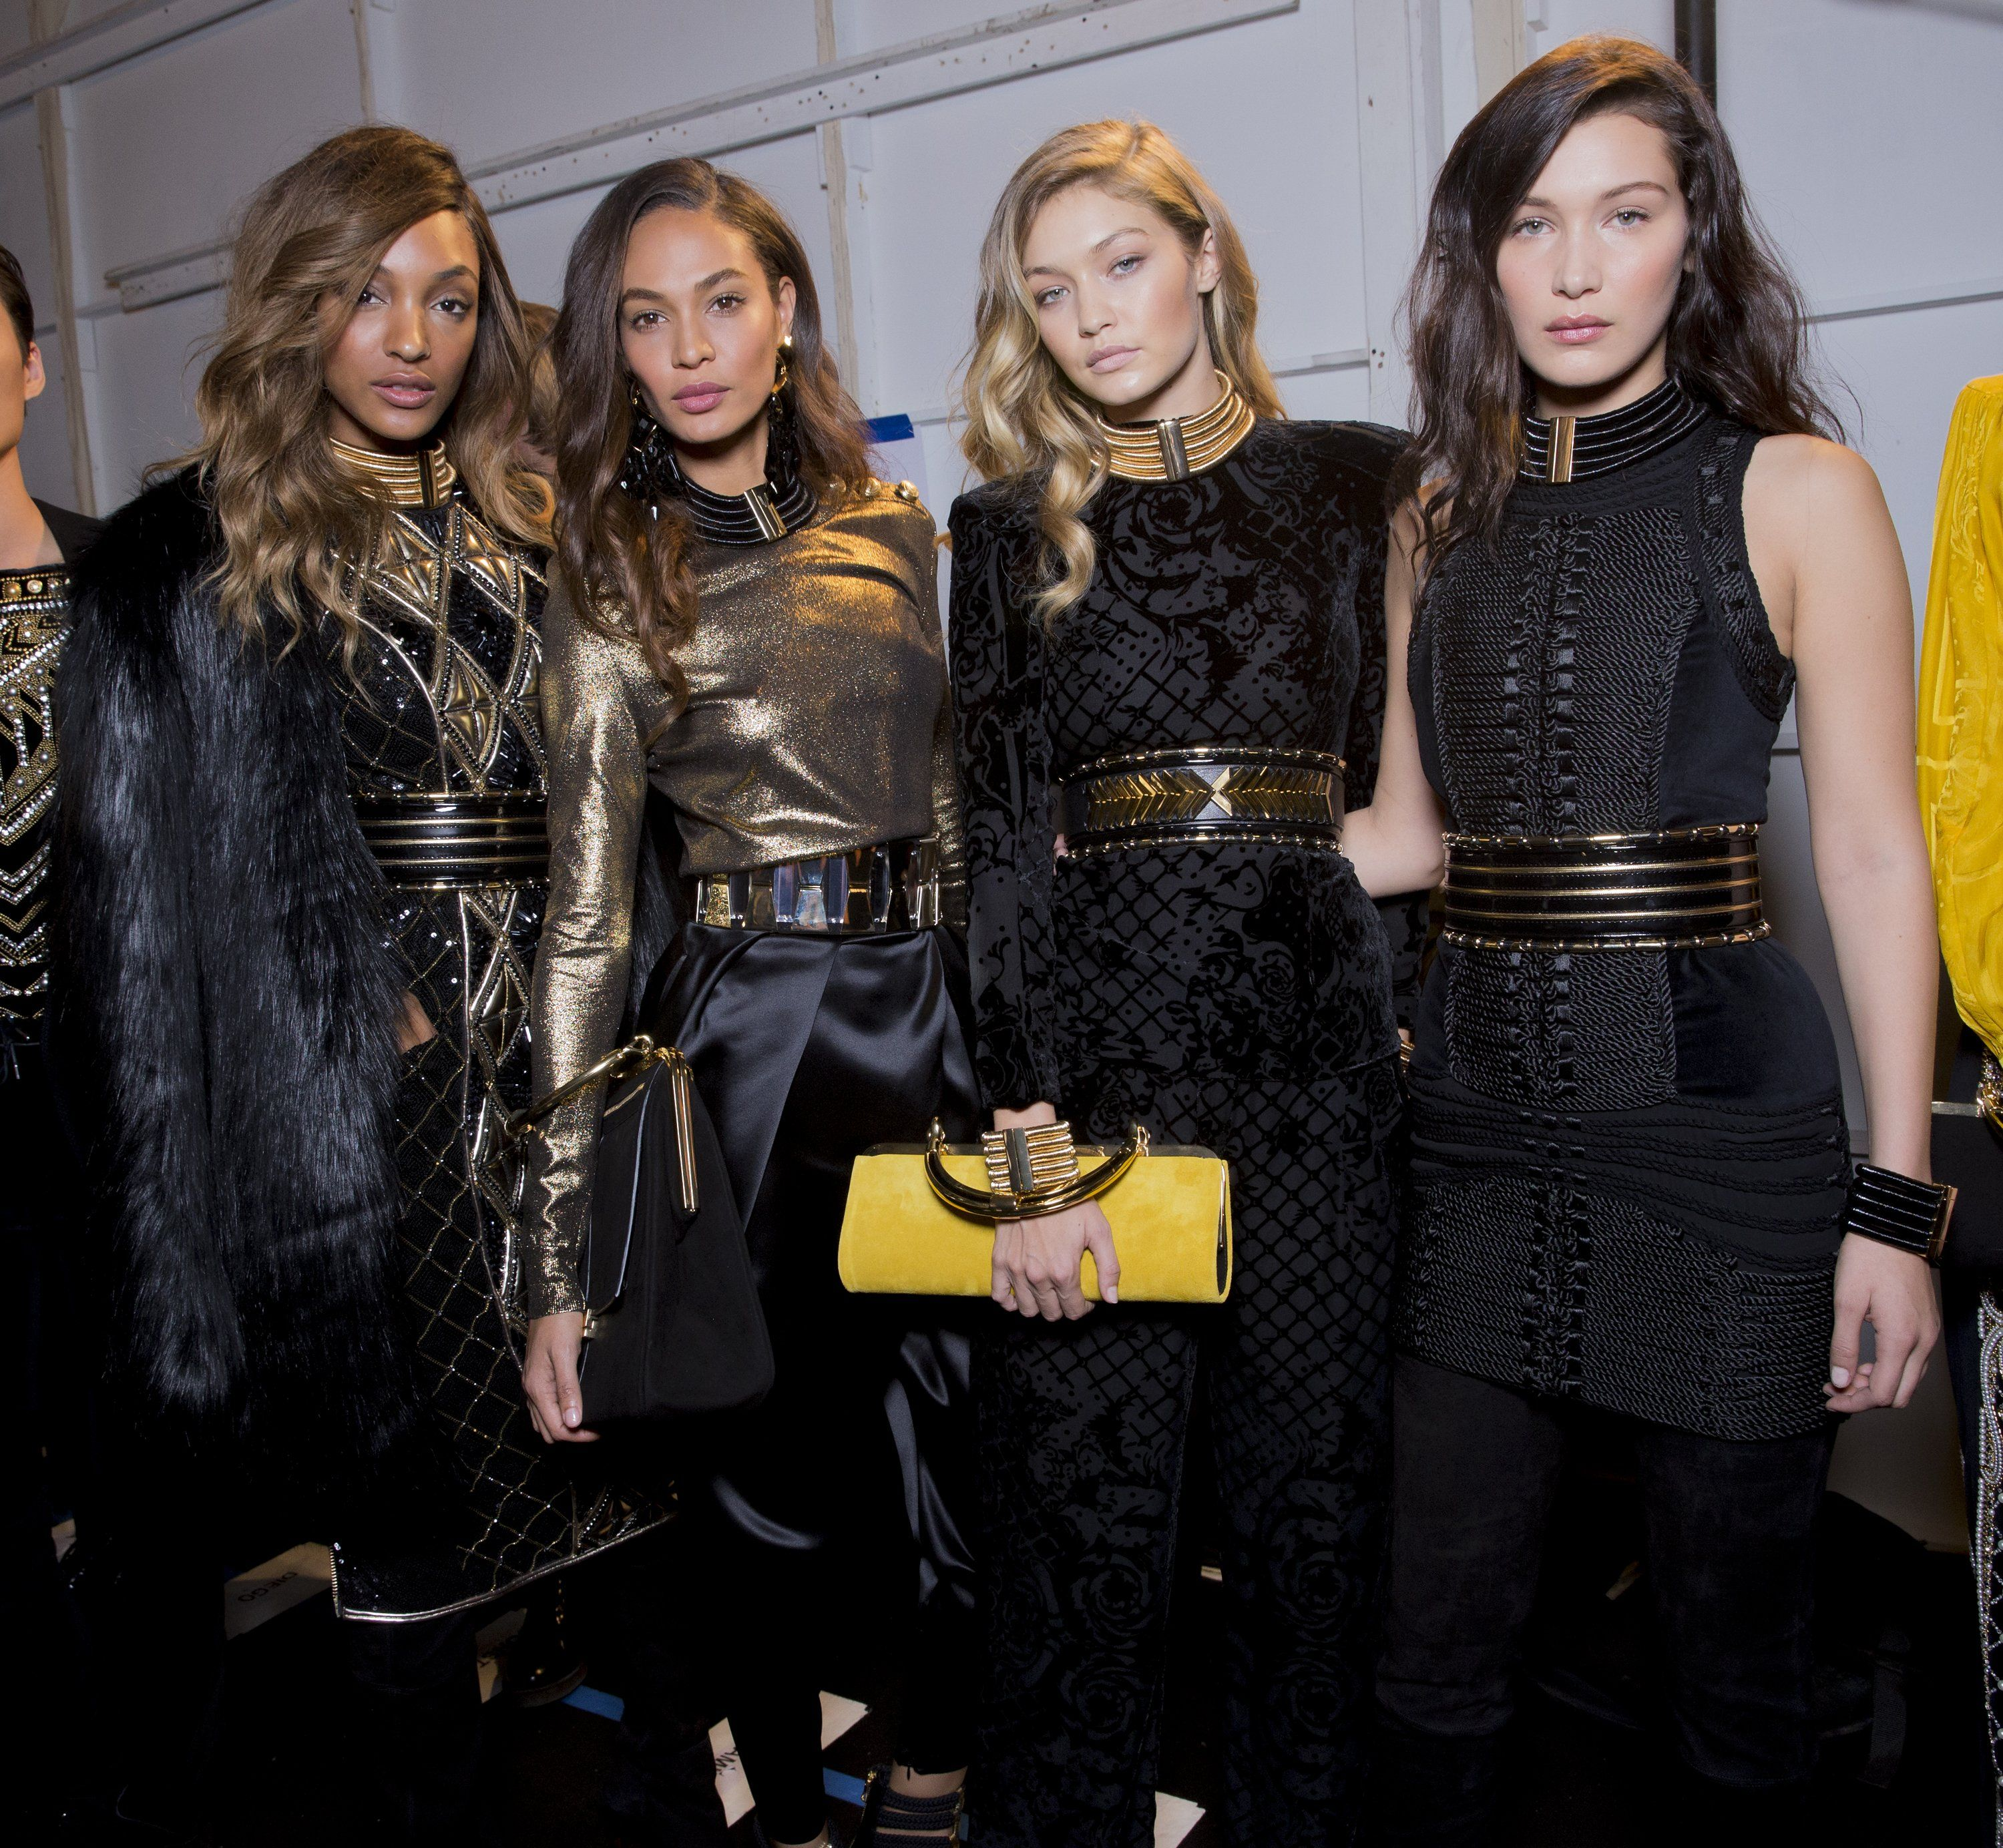 Behind the Scenes at the Balmain x H&M Fashion Show With Kevin Tachman